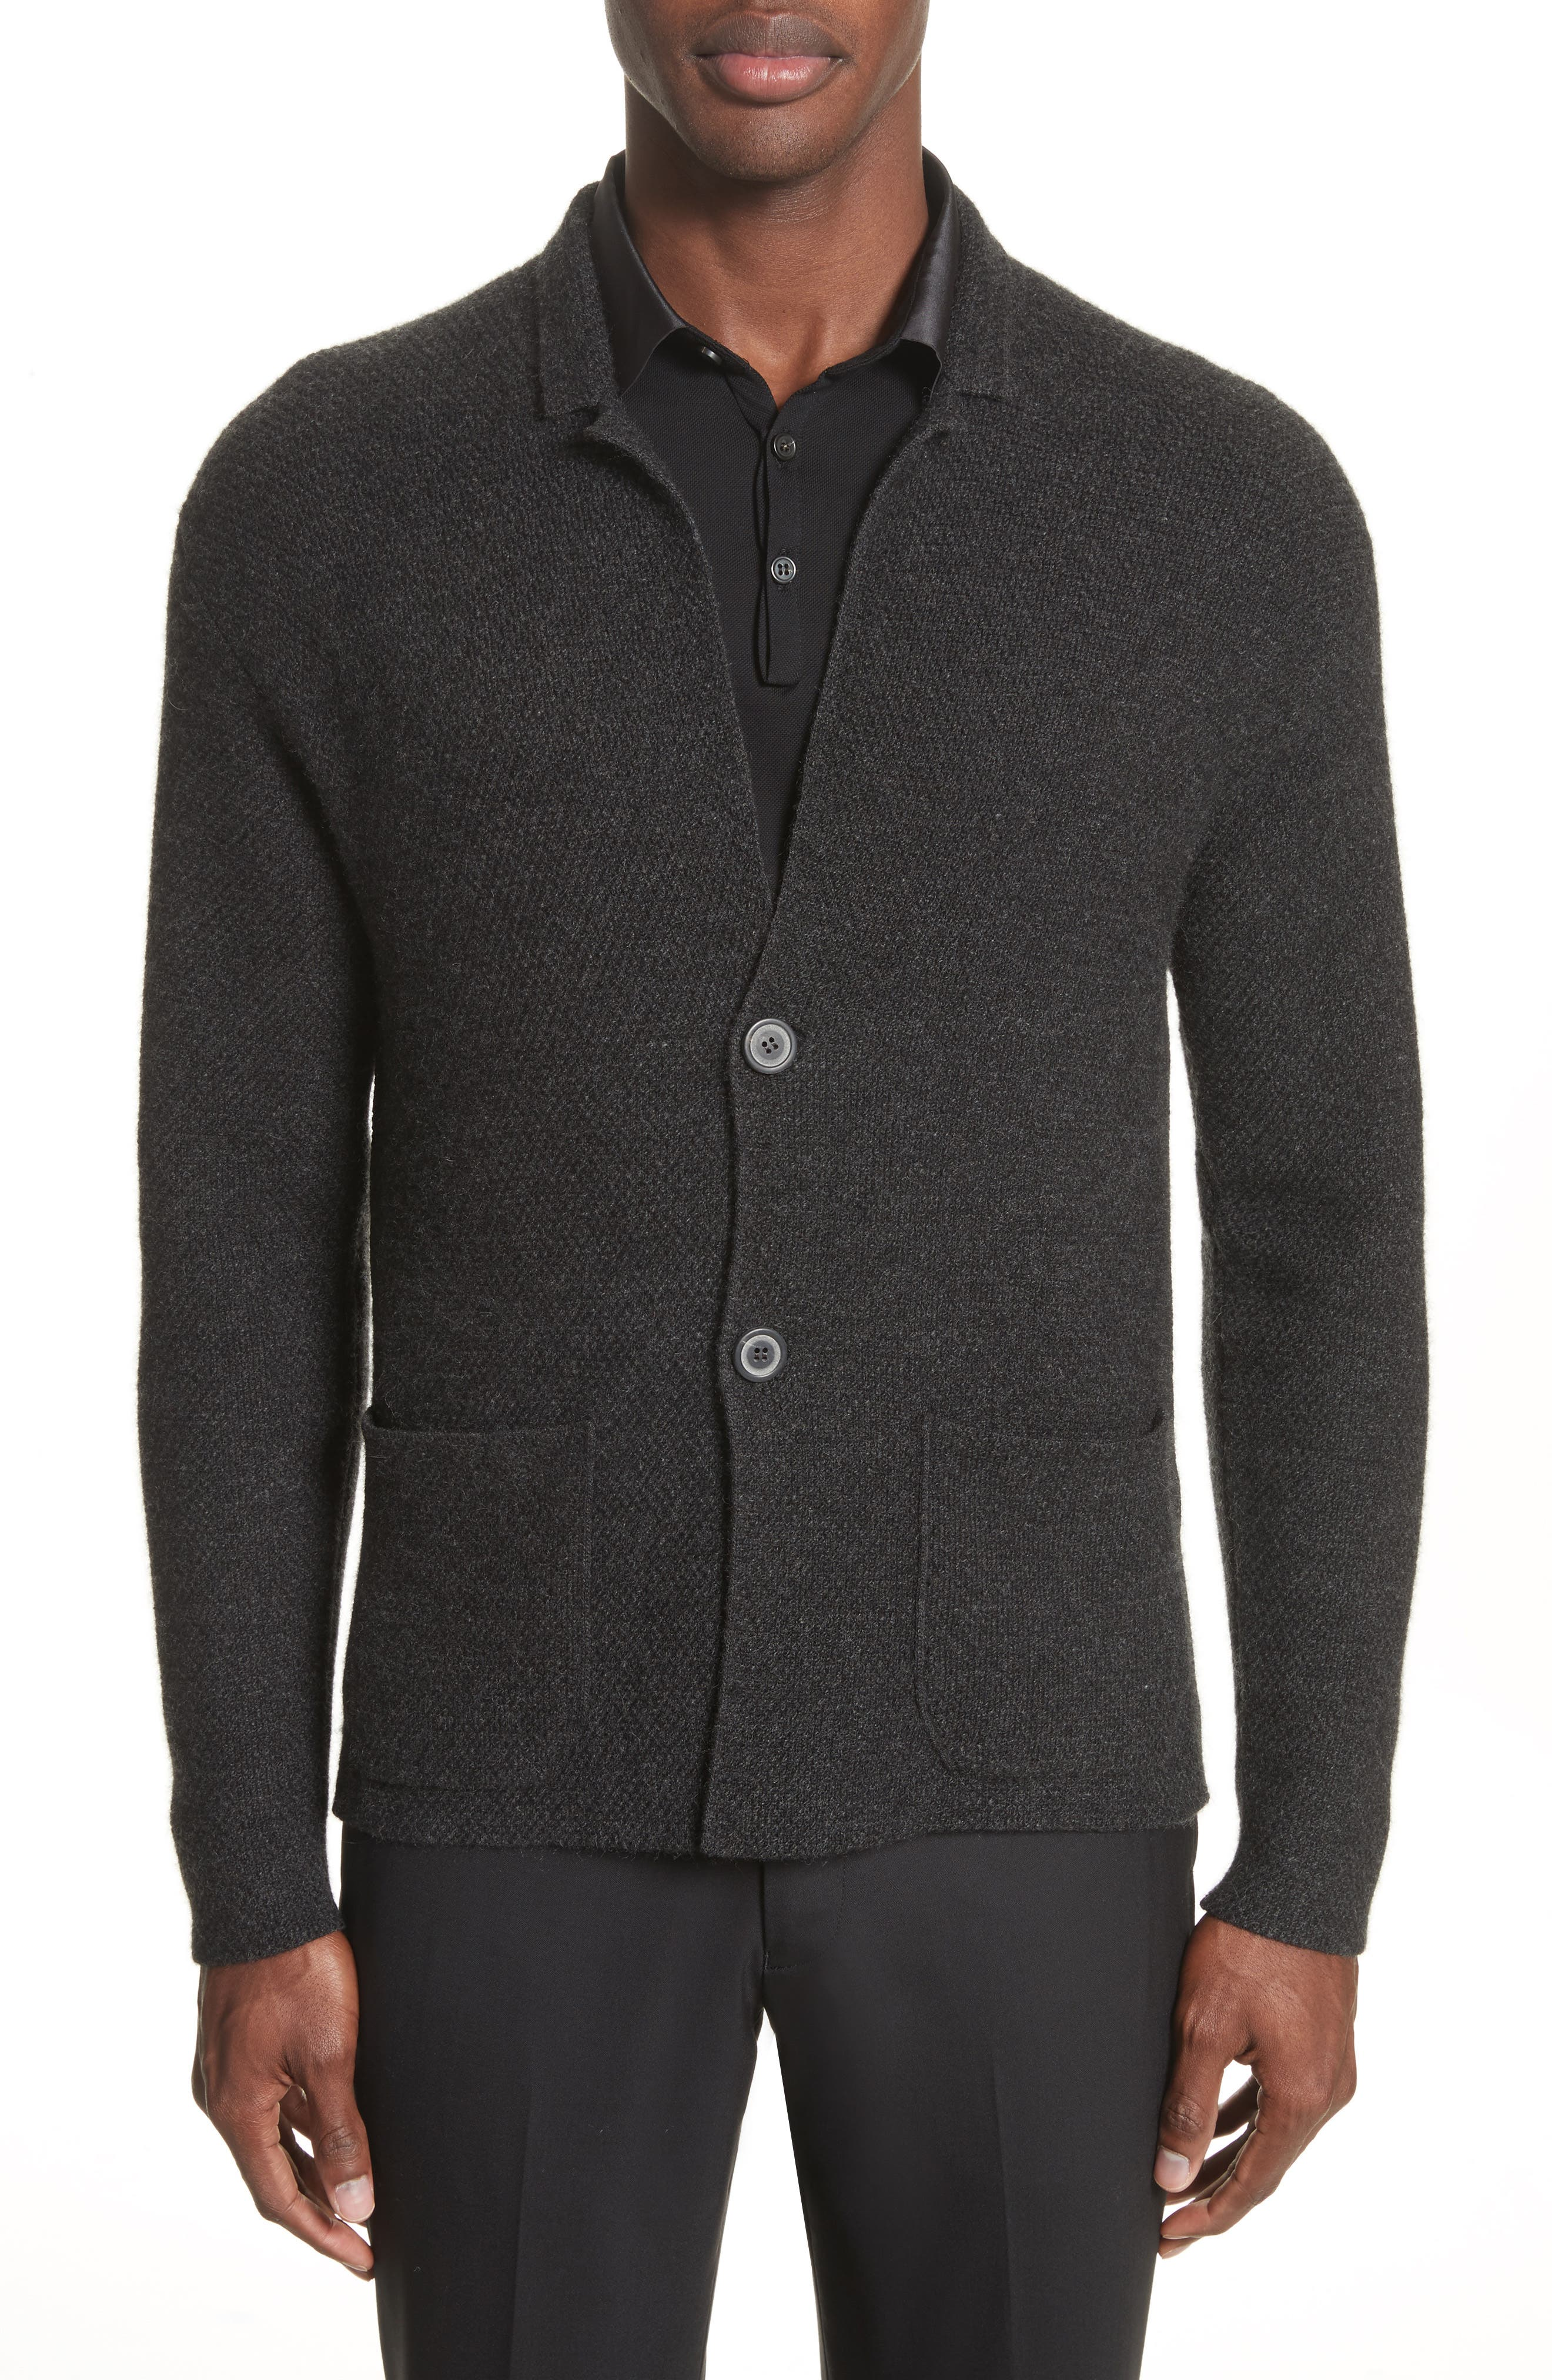 Alternate Image 1 Selected - Lanvin Cashmere Sweater Jacket